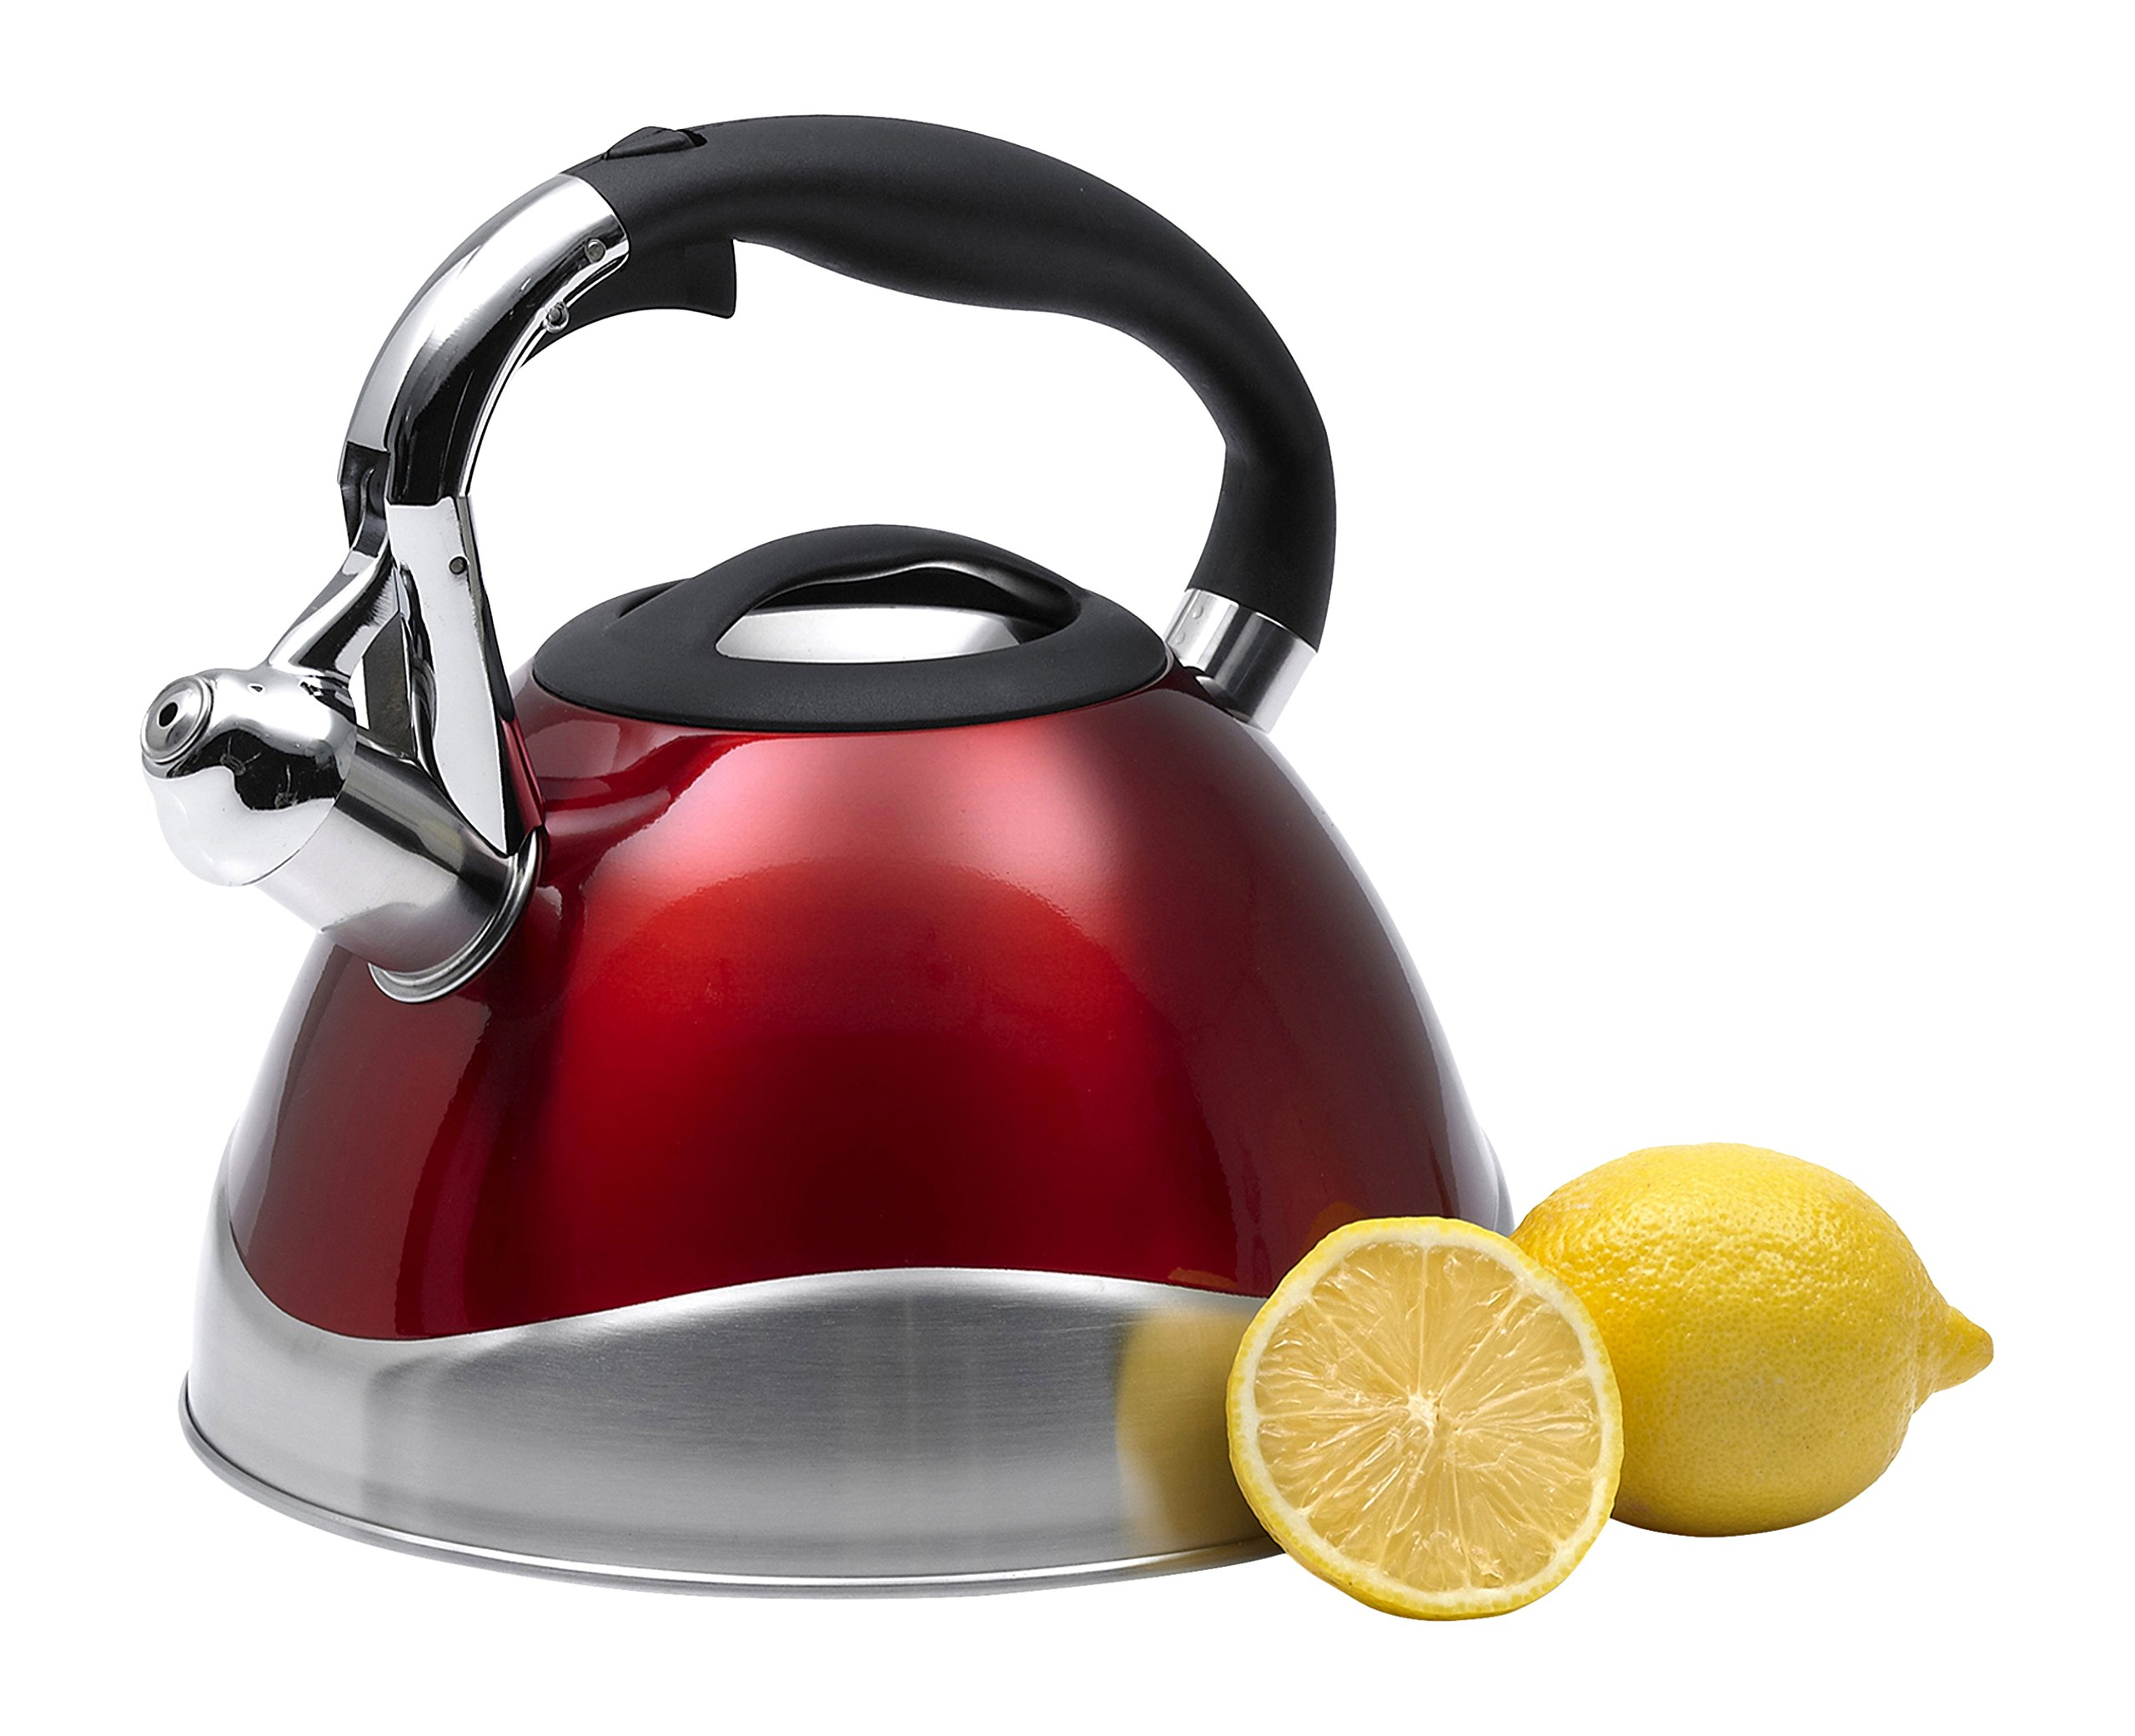 Creative Home Crescendo Whistling Tea Kettle, 3.1-Quart, Metallic Cranberry